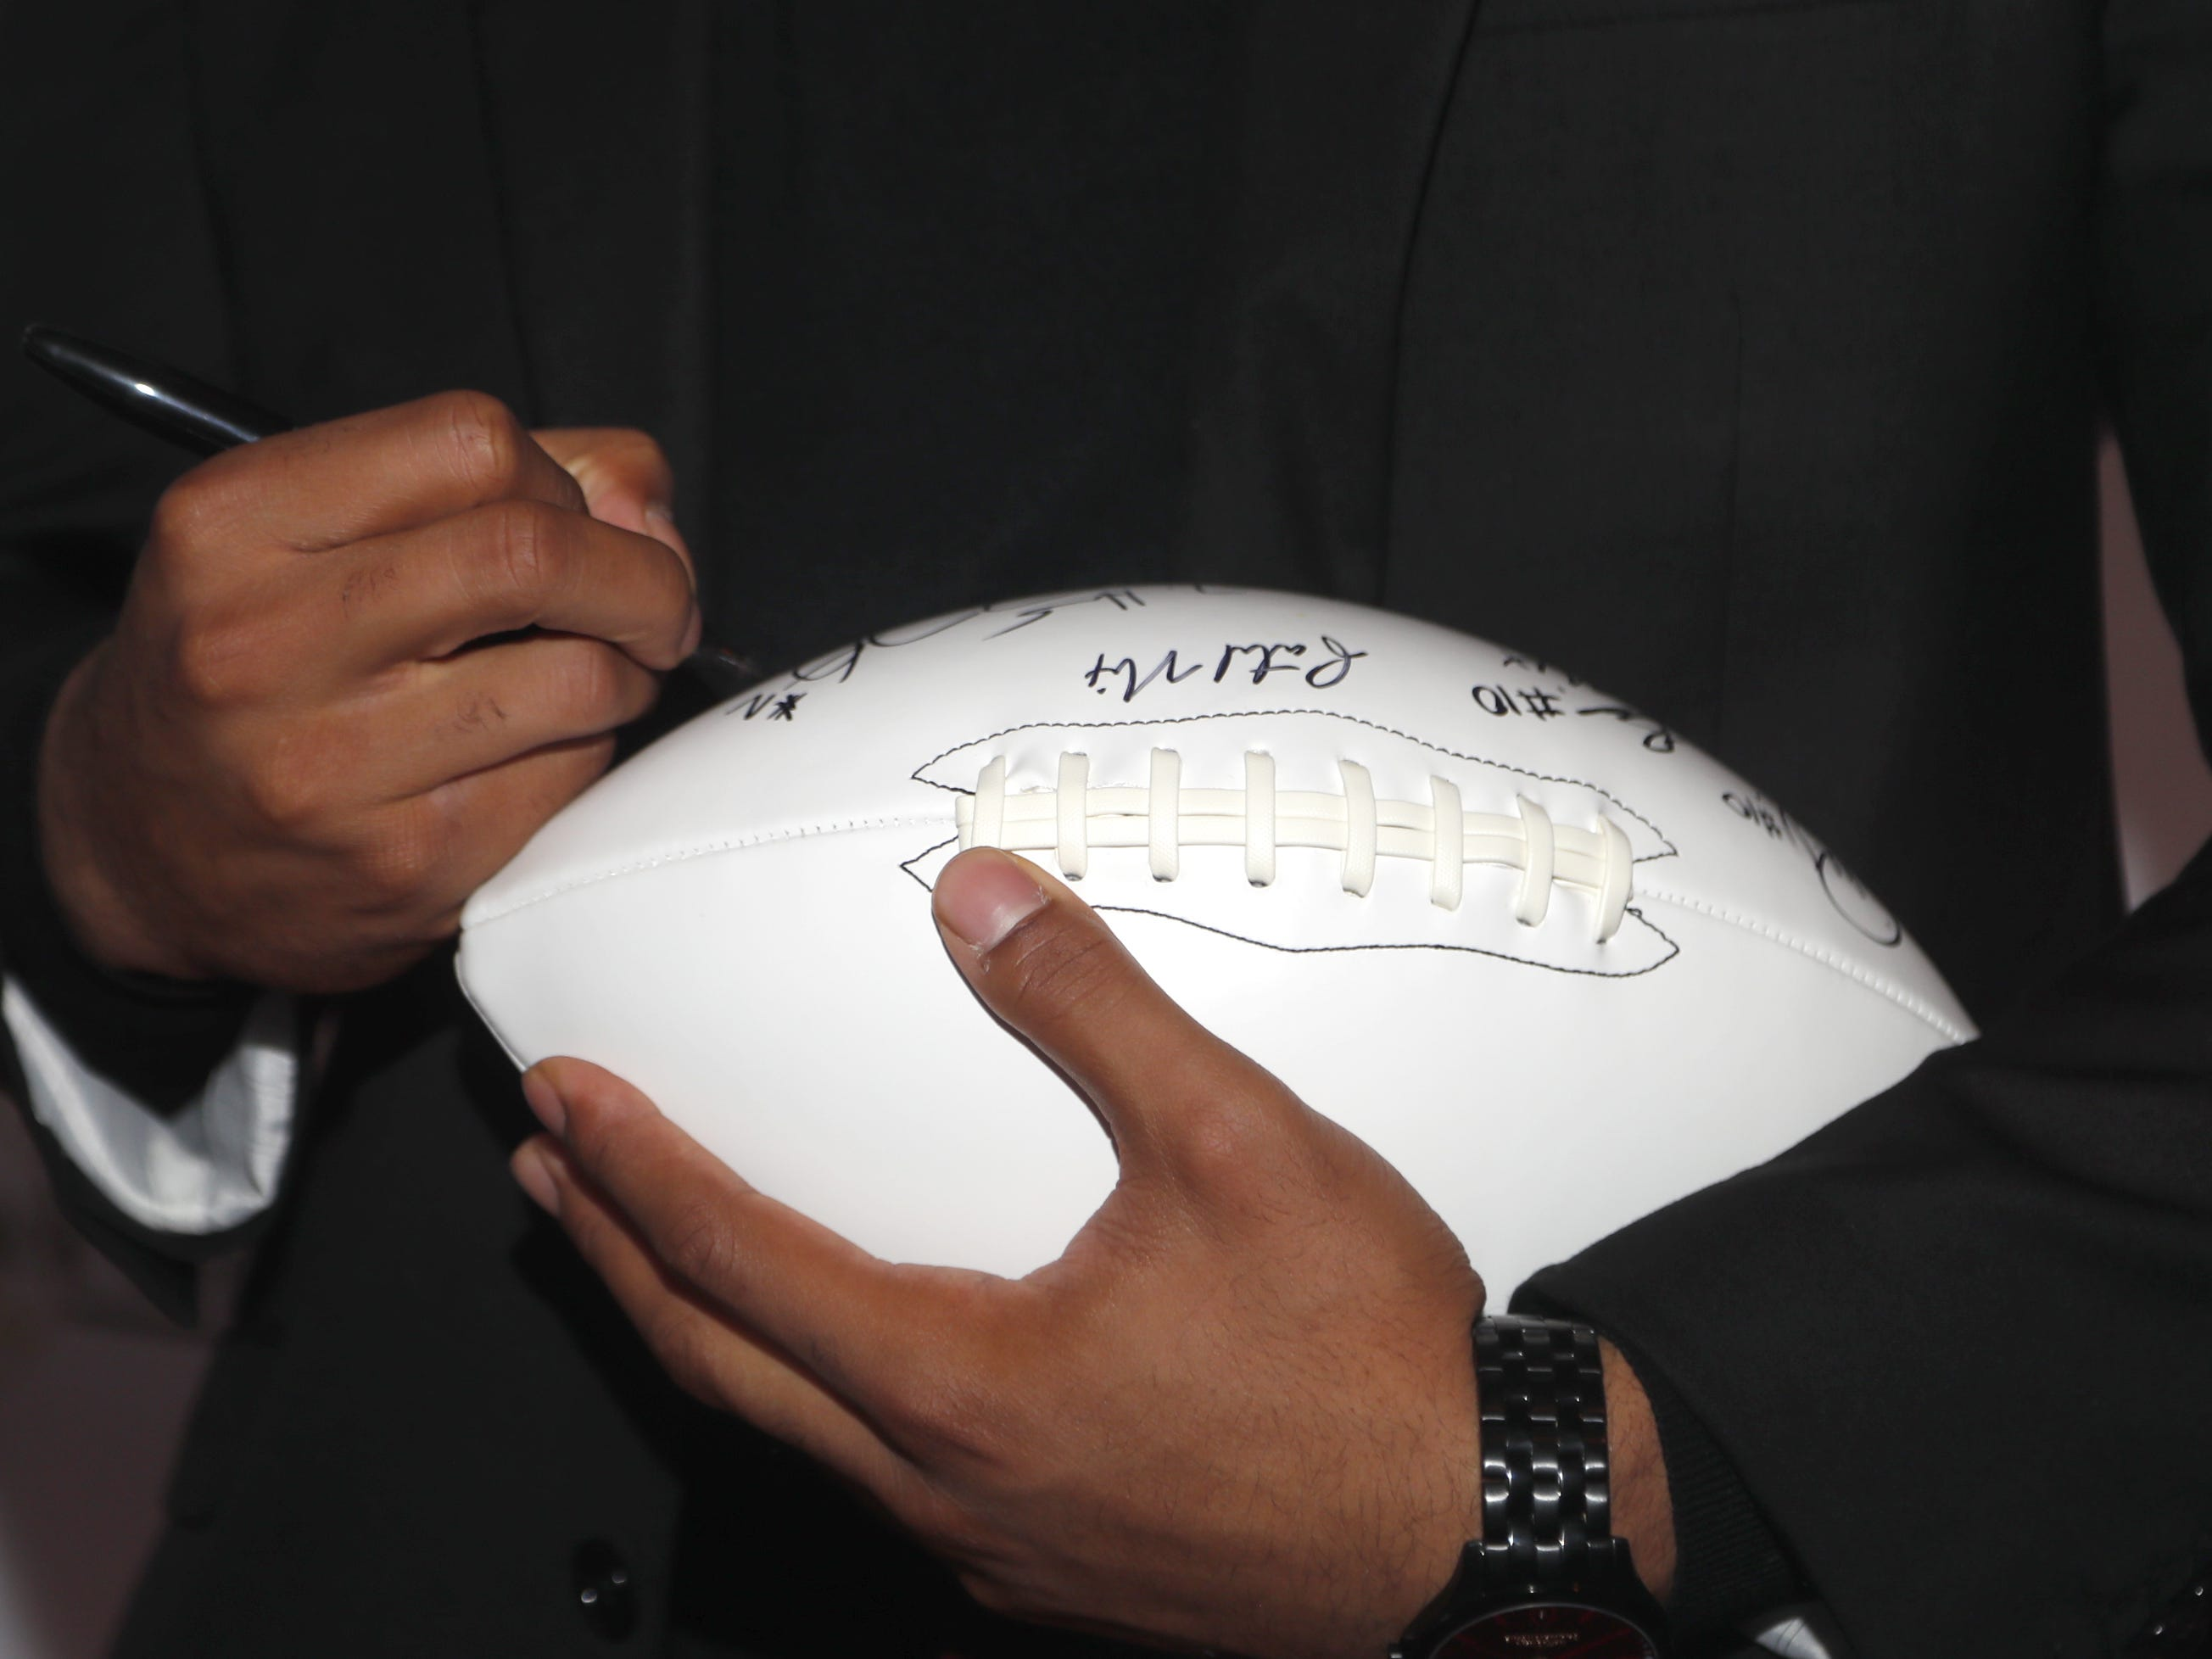 Oklahoma quarterback Jalen Hurts signs a football before the National Quarterback Club Awards Dinner & Hall of Fame Induction Ceremony The Scottsdale Resort at McCormick Ranch in Scottsdale, Ariz. on January 19, 2019.